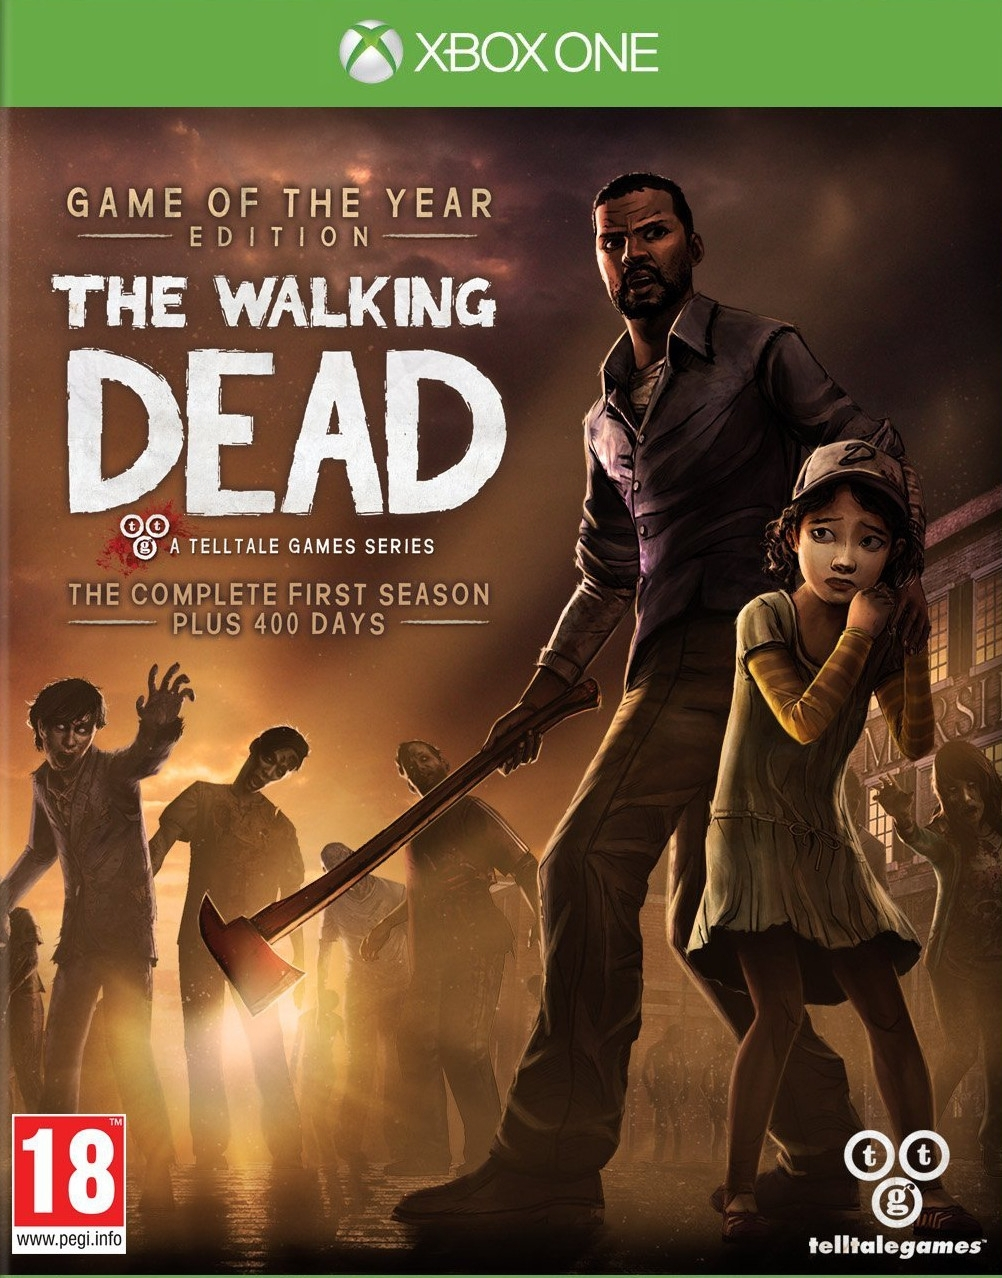 The Walking Dead (Xbox One)